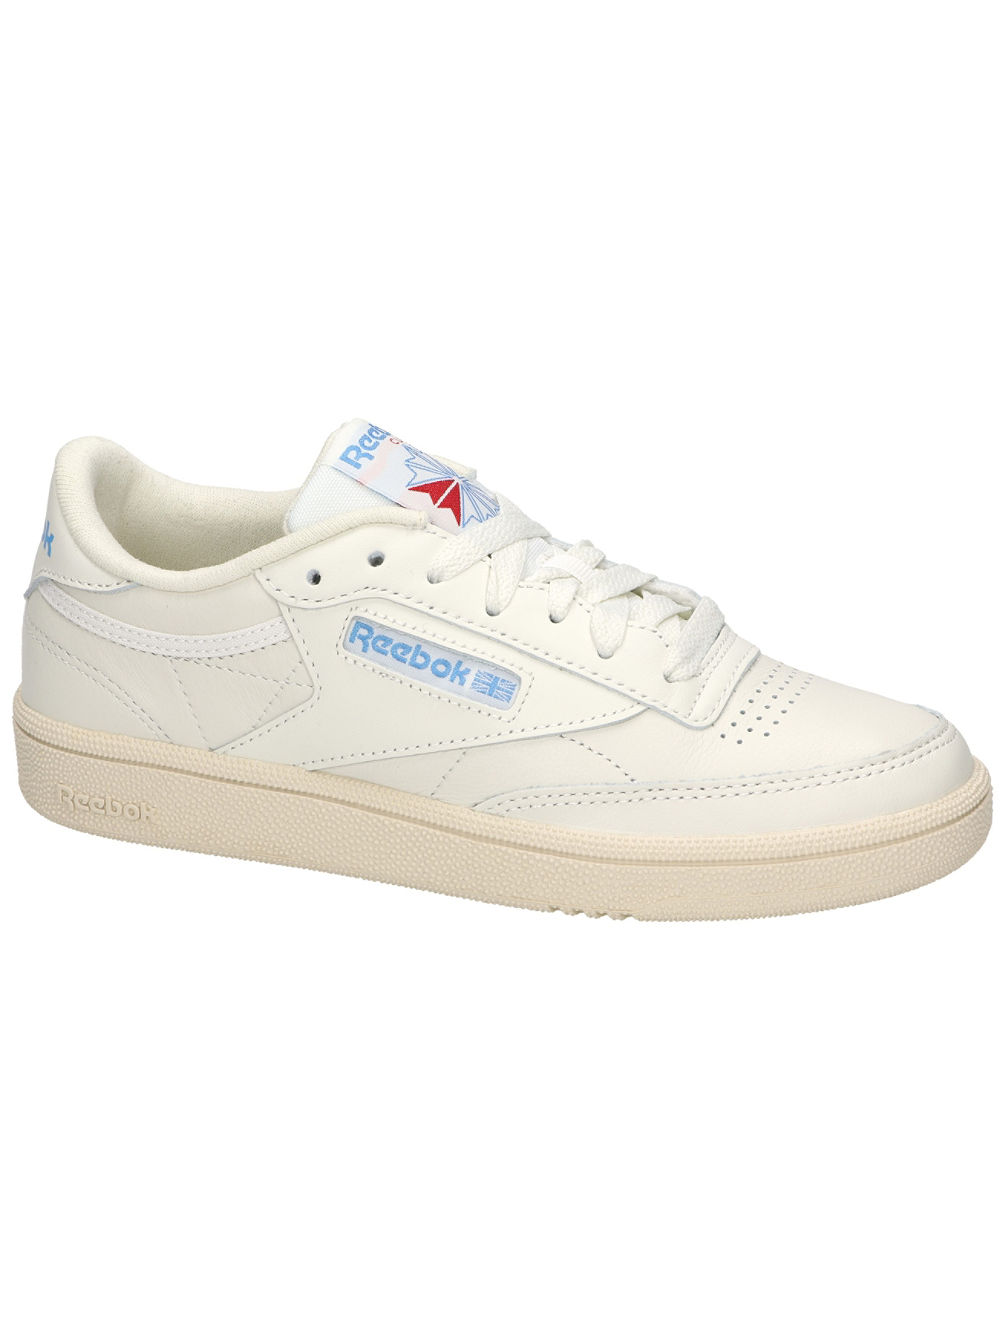 Club C85 OG Sneakers Women